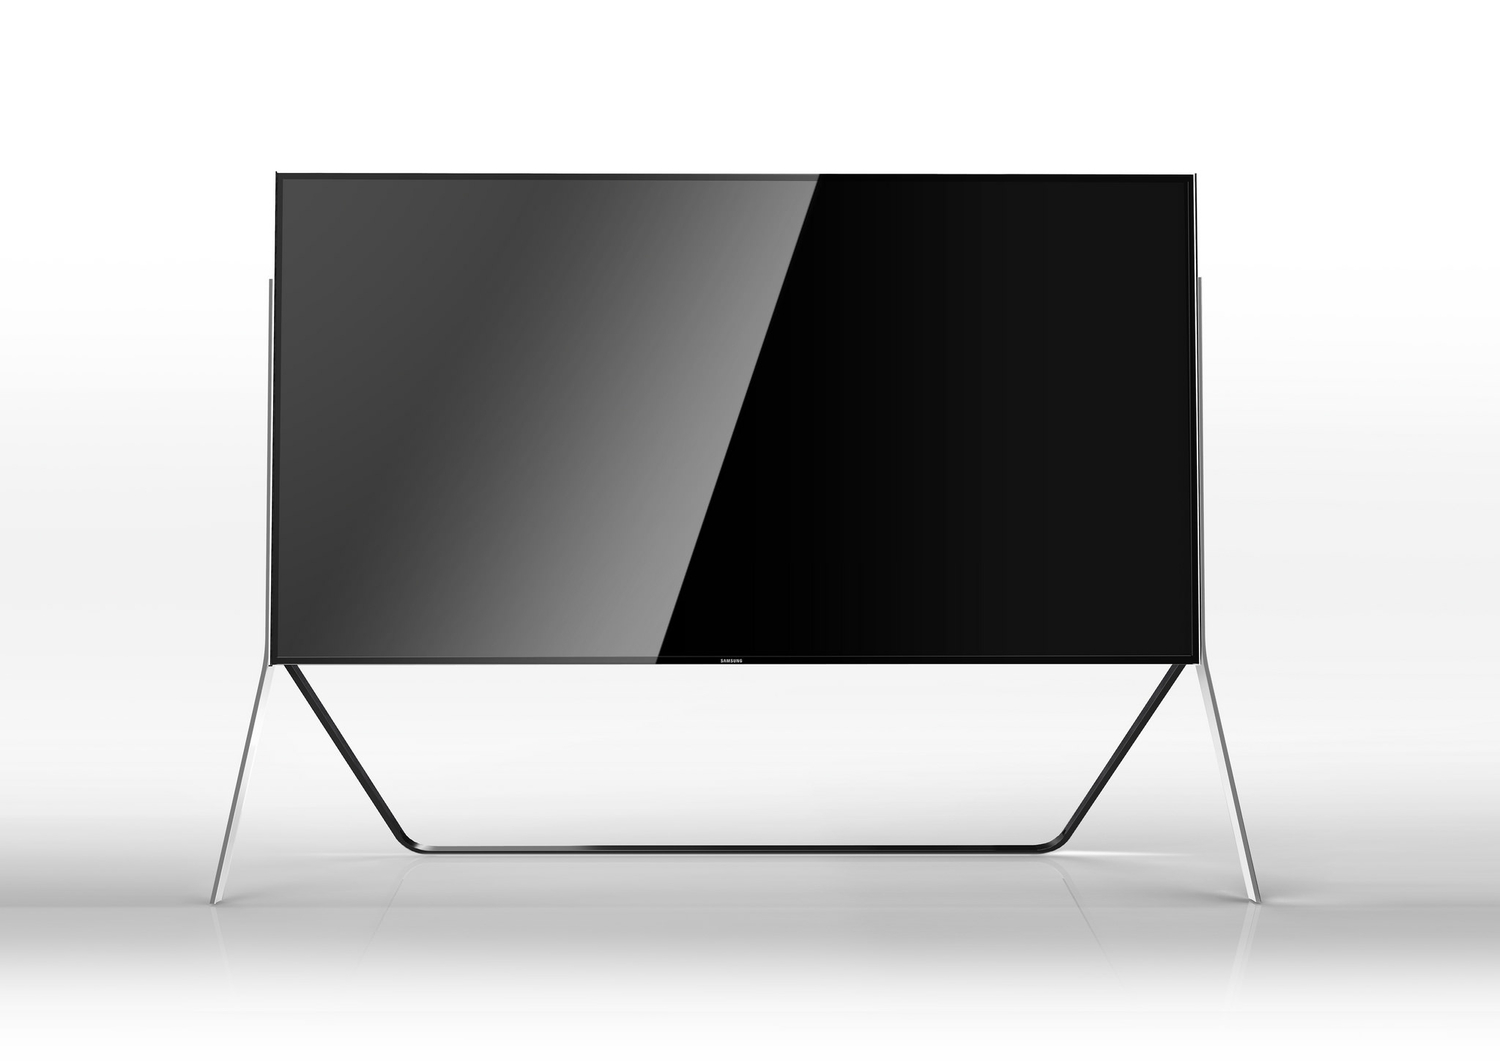 Mind Bending: Samsung's Curved TV Is Actually Going On Sale